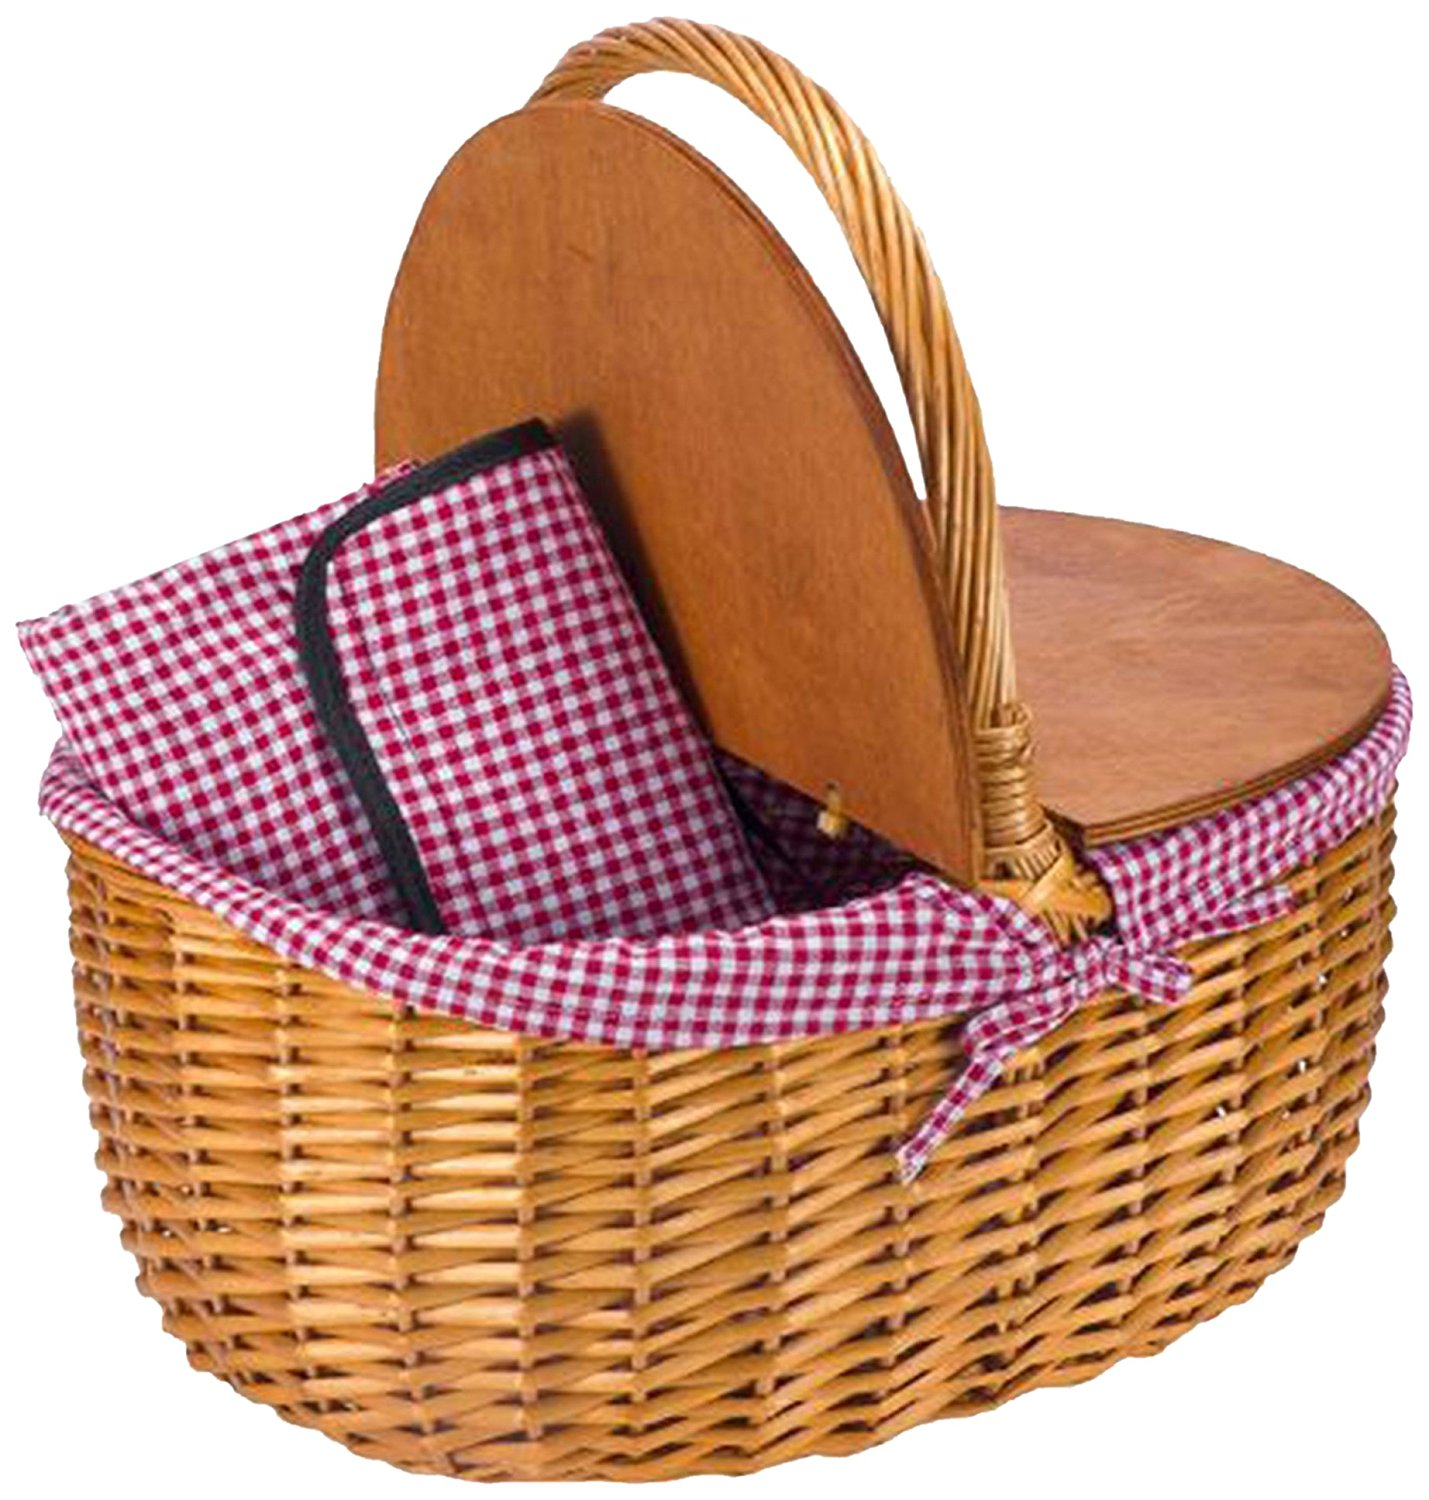 """CALIFORNIA PICNIC Picnic Basket   Double Wood Top Design  Includes FREE Oversize 57"""" x 57"""" Matching Gingham Patterned Lining Picnic BLANKET Waterproof Backing Willow Basket"""